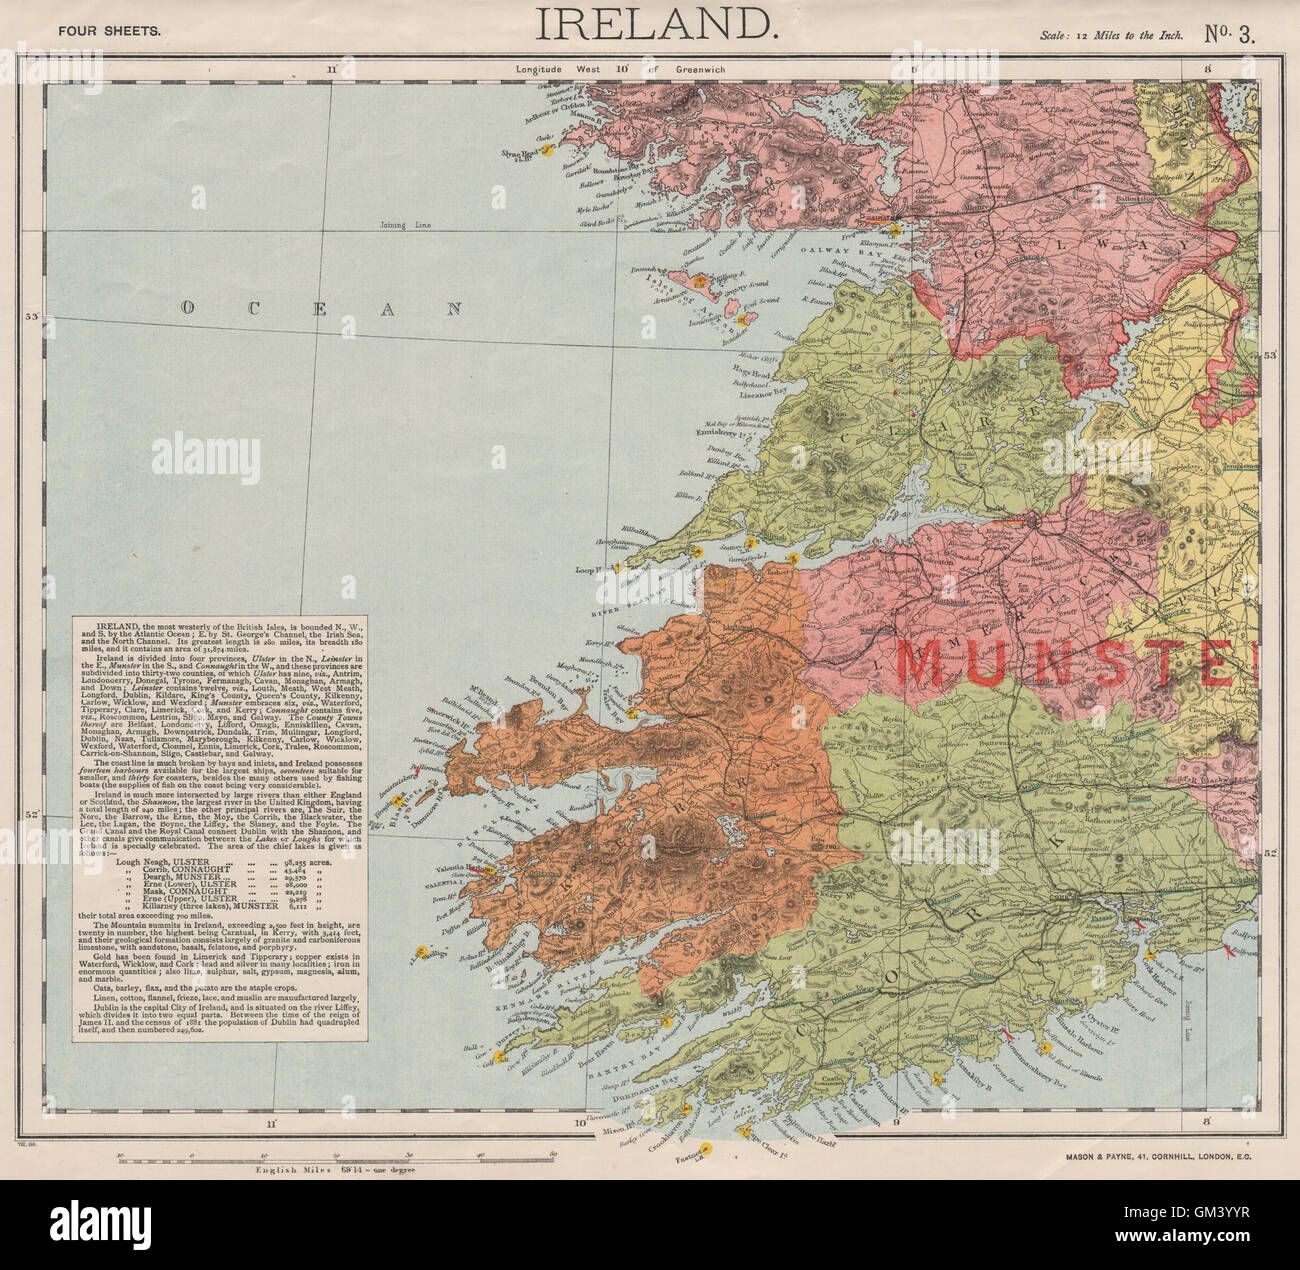 Lighthouses In Ireland Map.Sw Ireland Munster Lighthouses Lifeboat Stations Round Towers